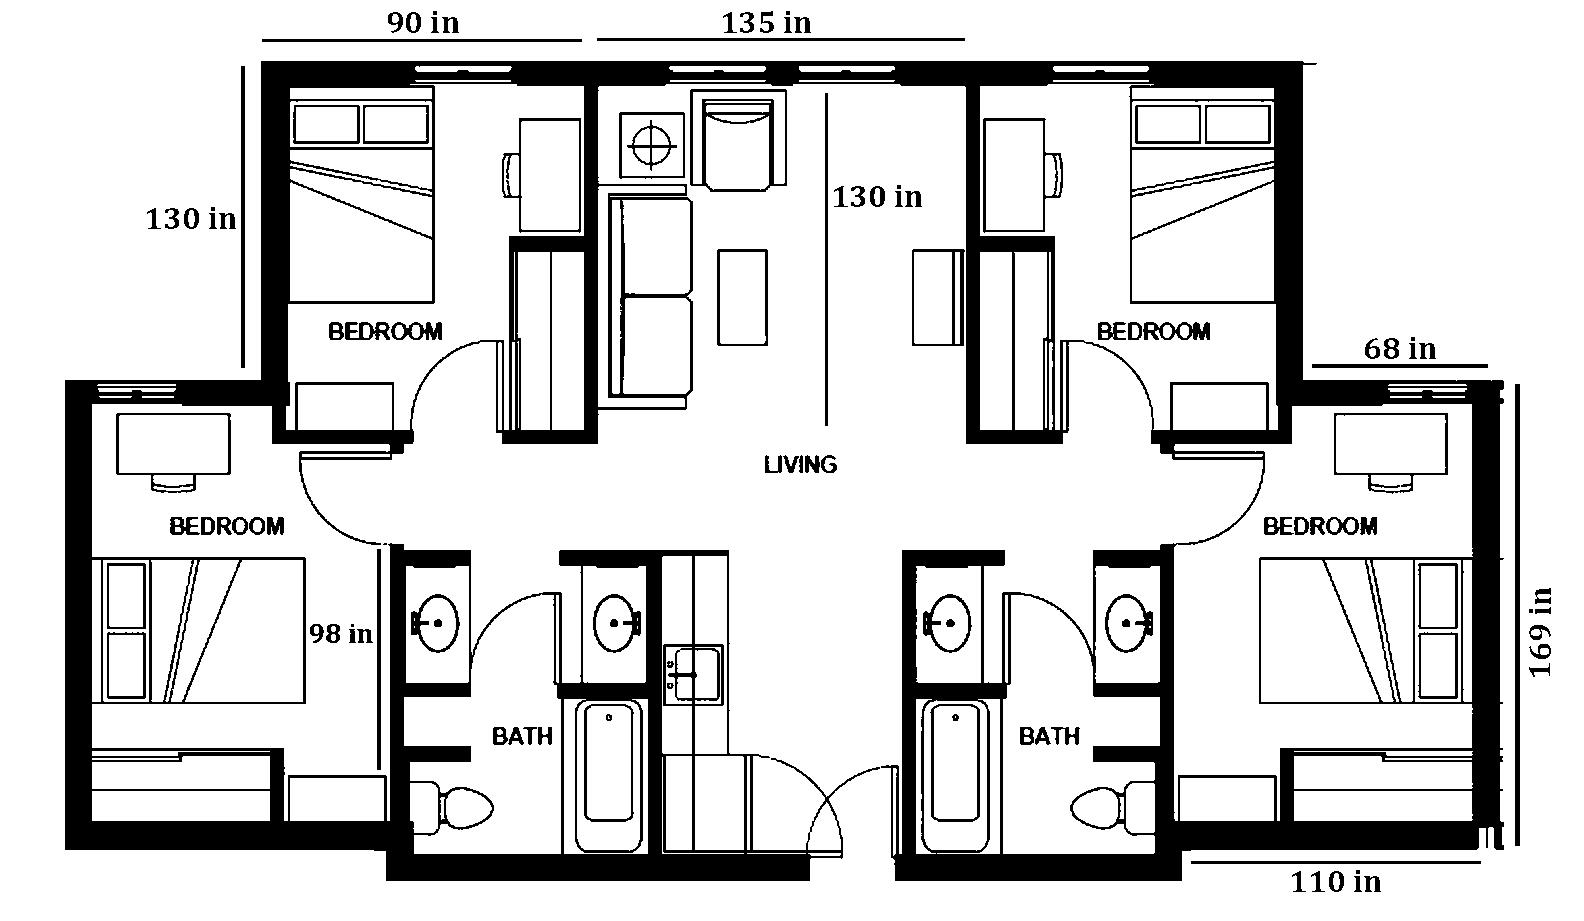 Mcloughlin single room layout with dimensions